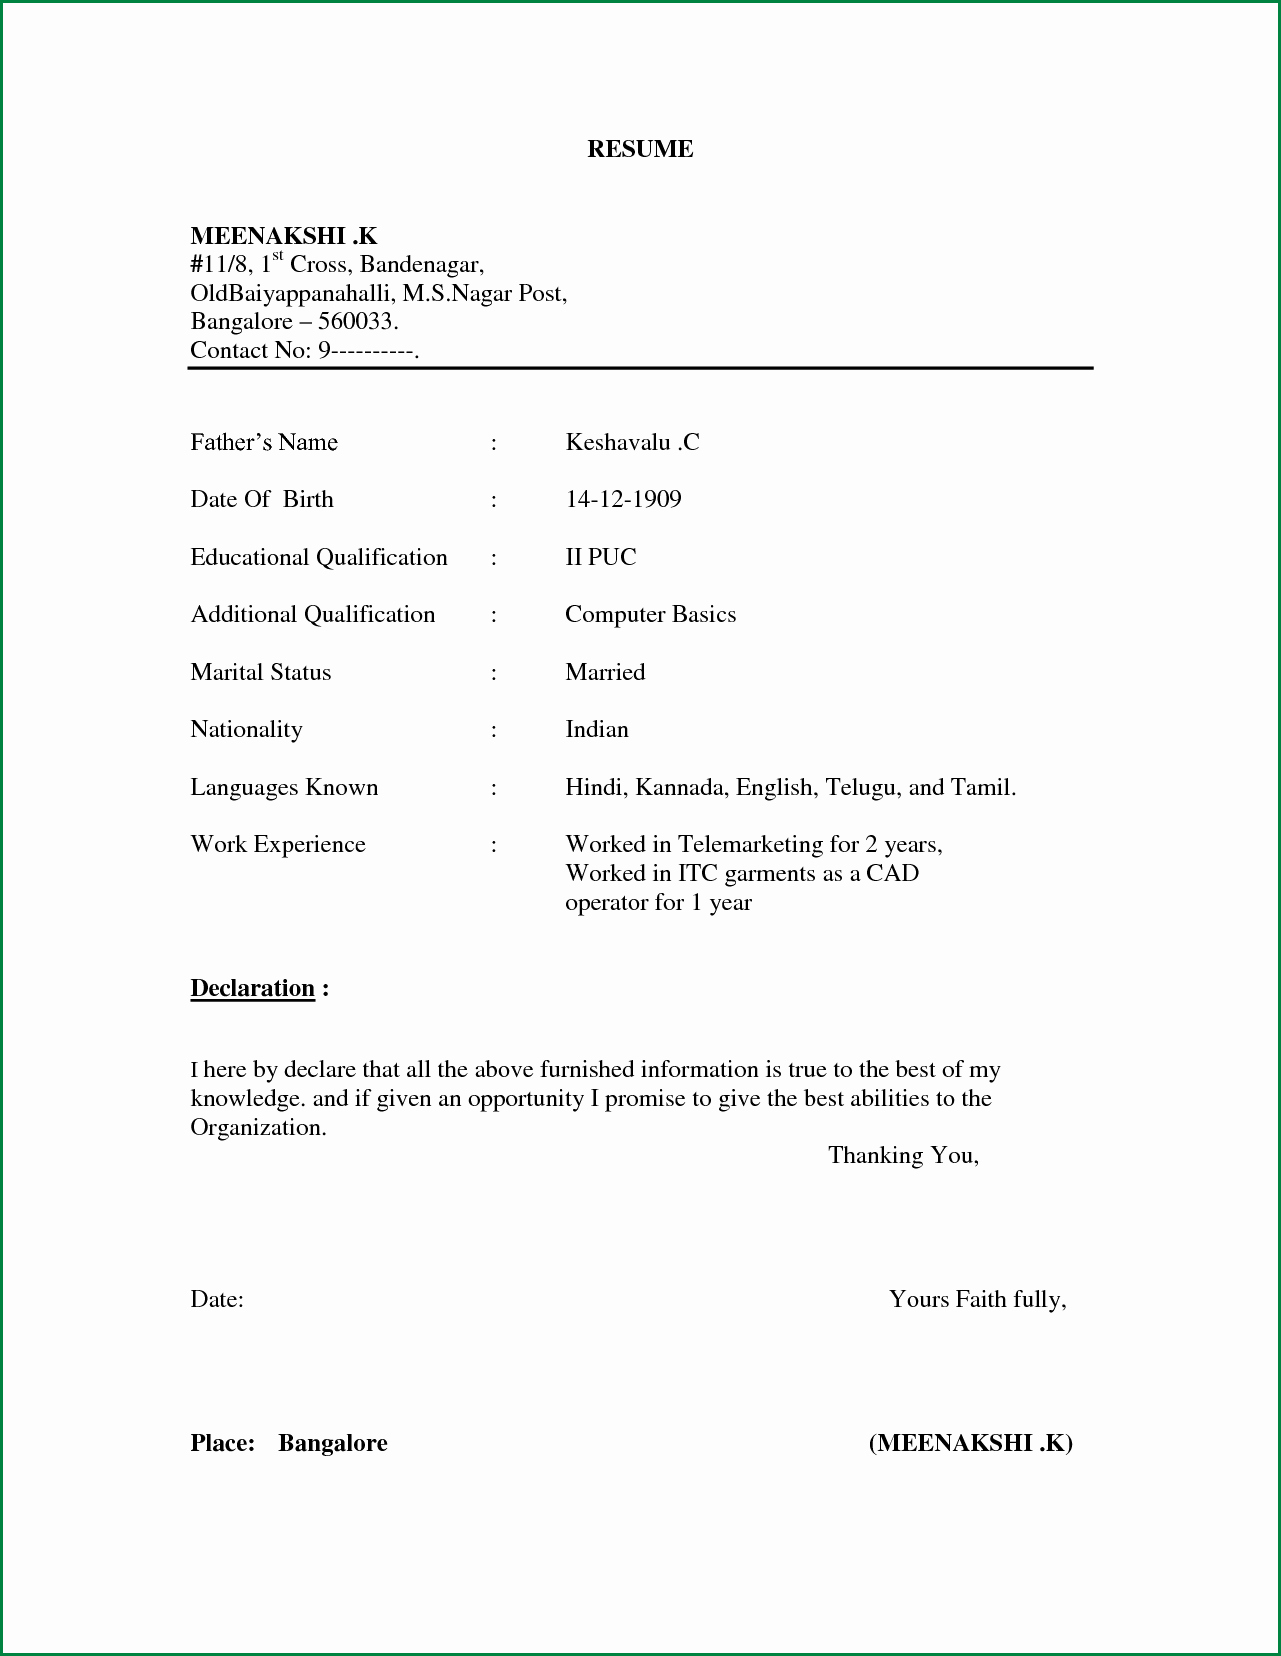 Example Of Simple Resume format Luxury Simple Resume format for Freshers In Word File